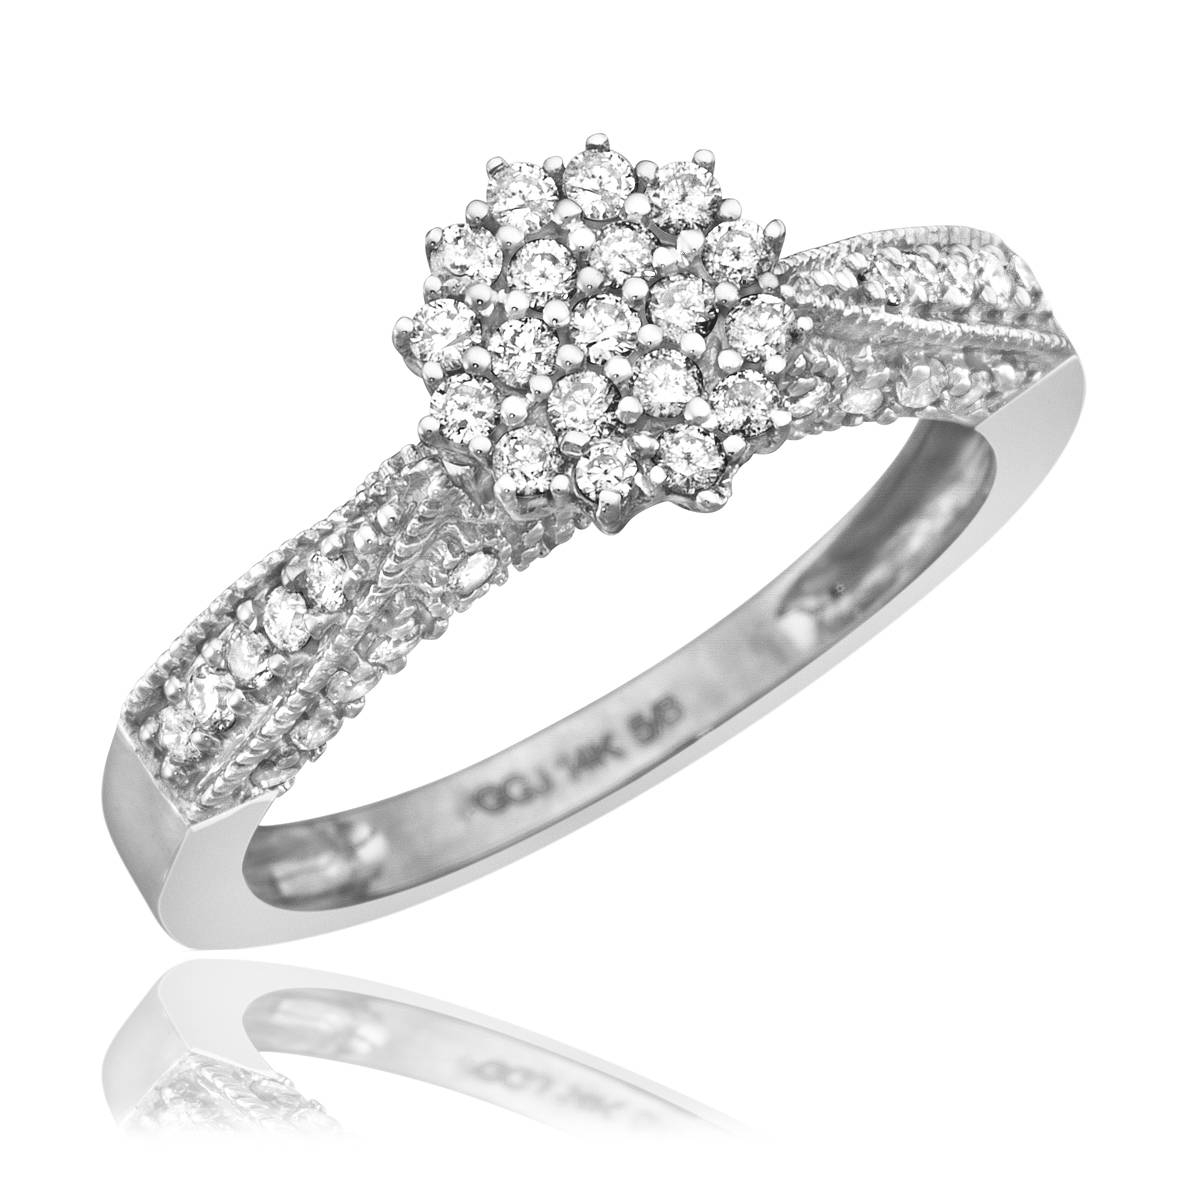 1 Carat Diamond Trio Wedding Ring Set 14K White Gold Intended For Women Diamond Wedding Rings (View 1 of 15)